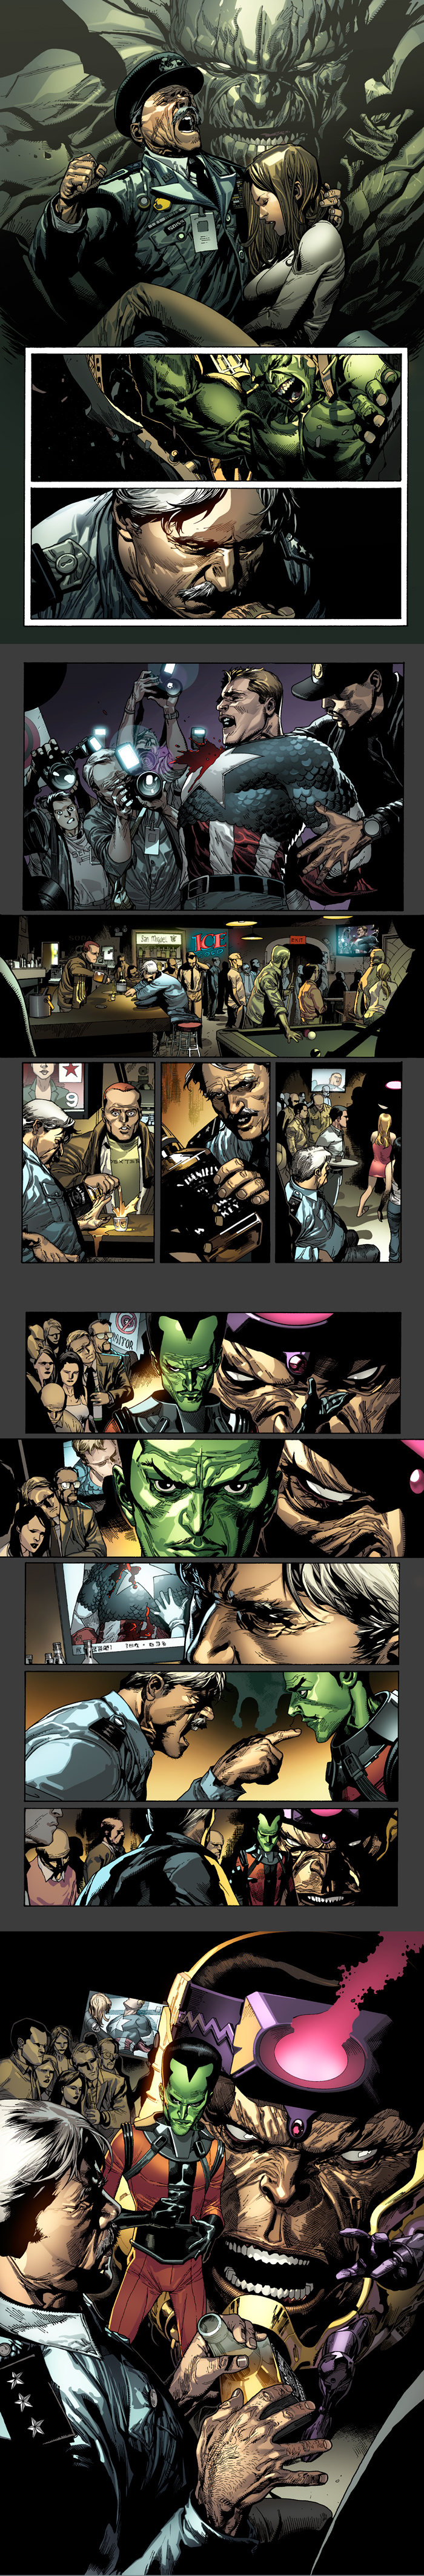 Pages of Hulk 23 by Leinil Yu